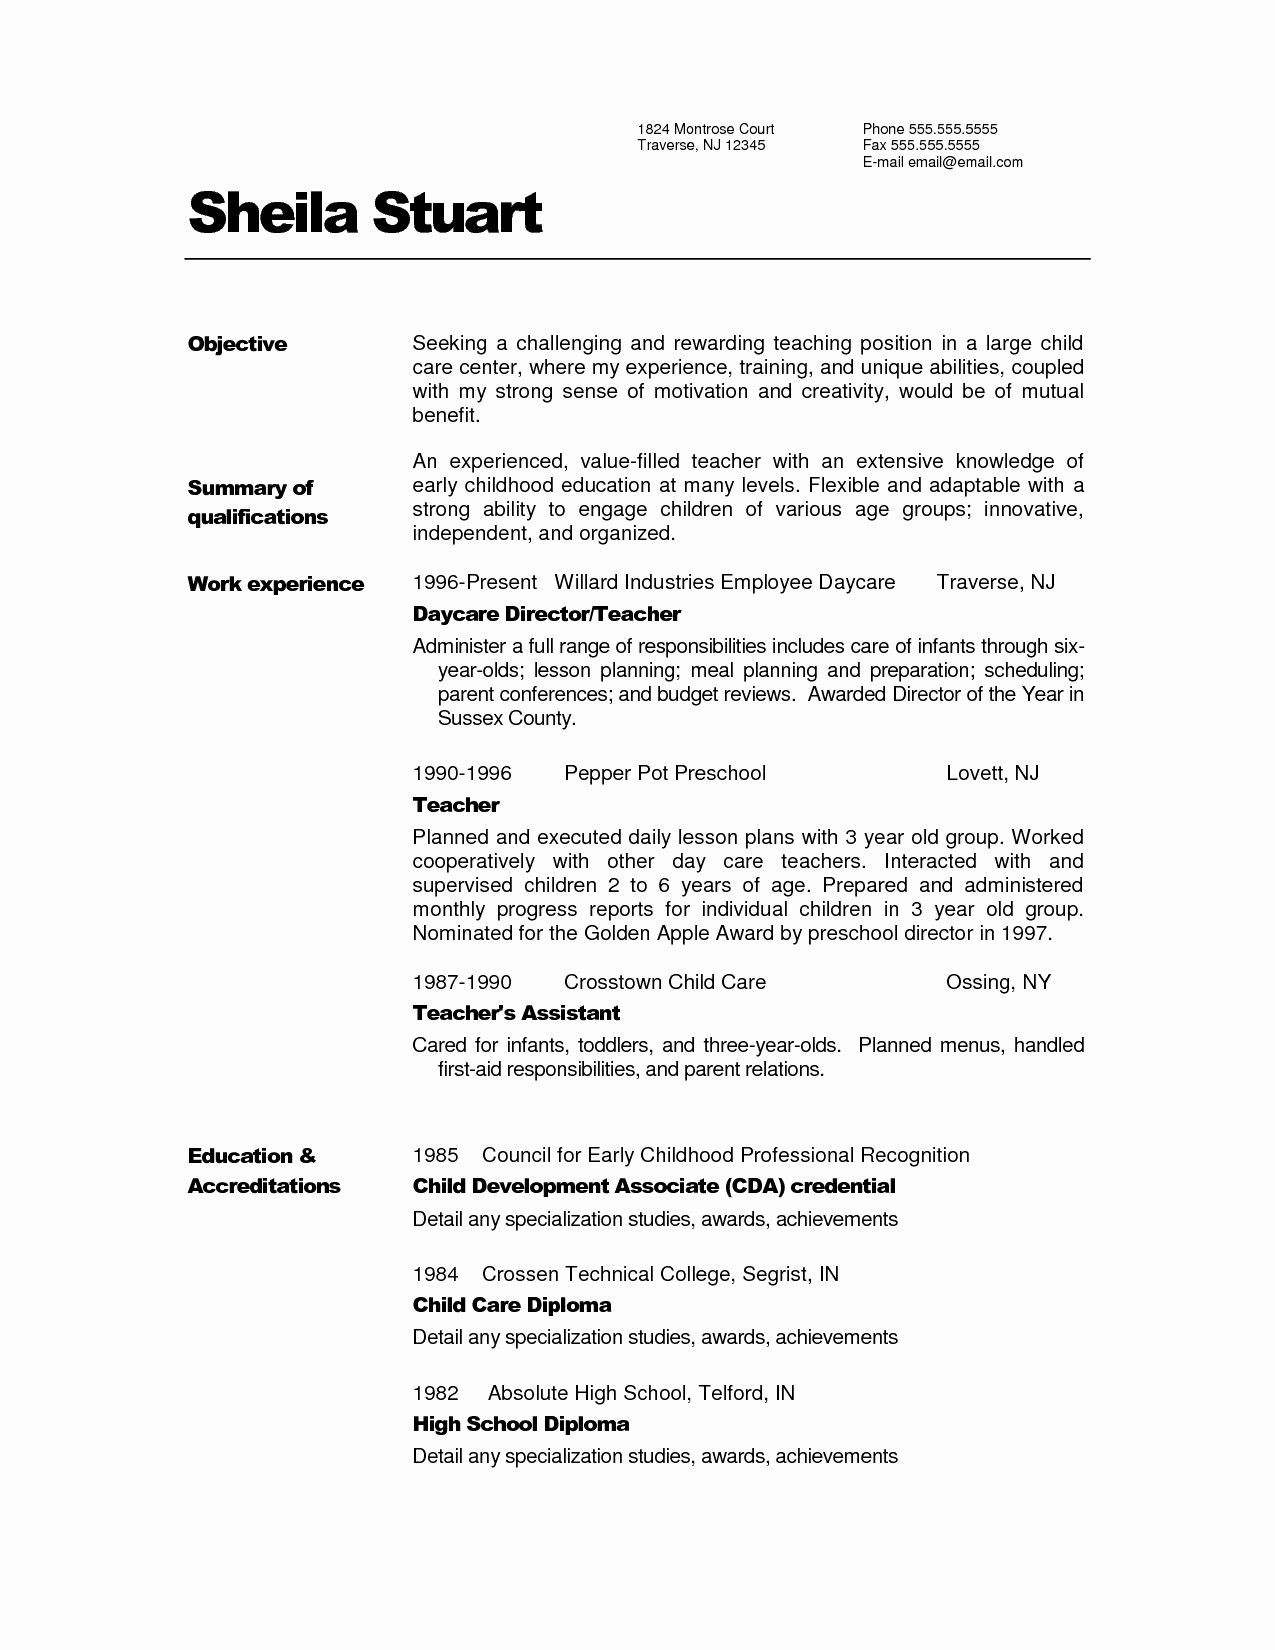 resume template for 50 year old  Resume Examples For 50 Year Olds , #examples #resume # ..